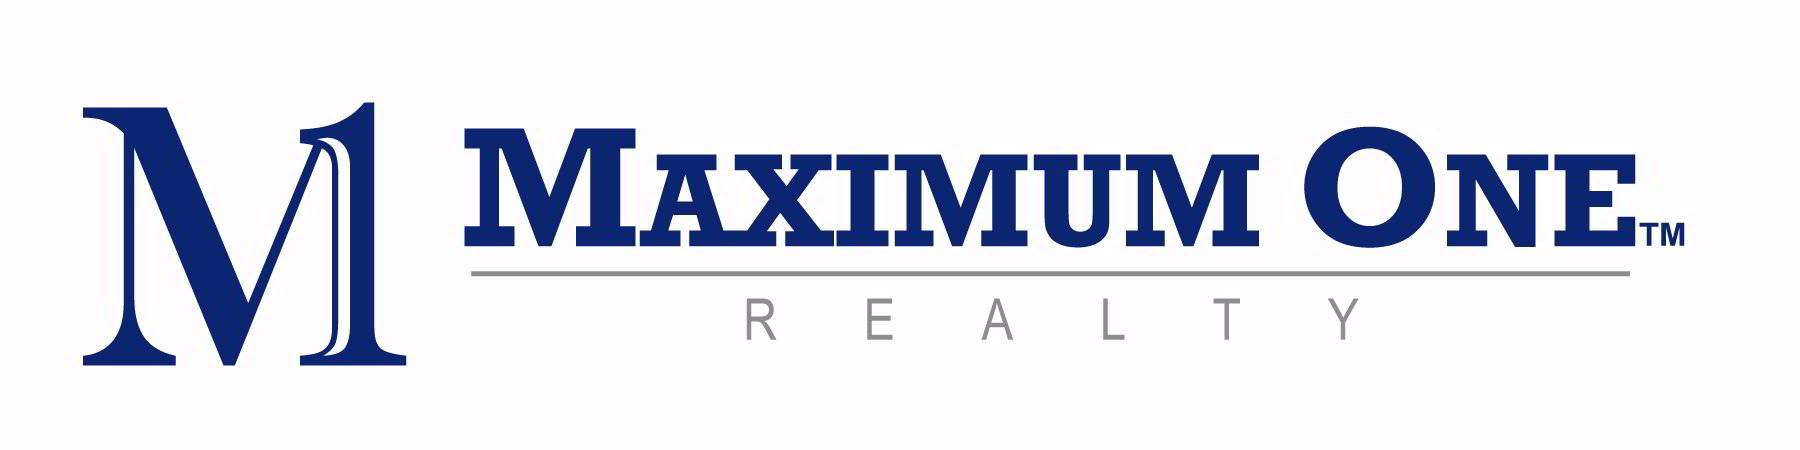 Maximum One Realtor|Realty Partners